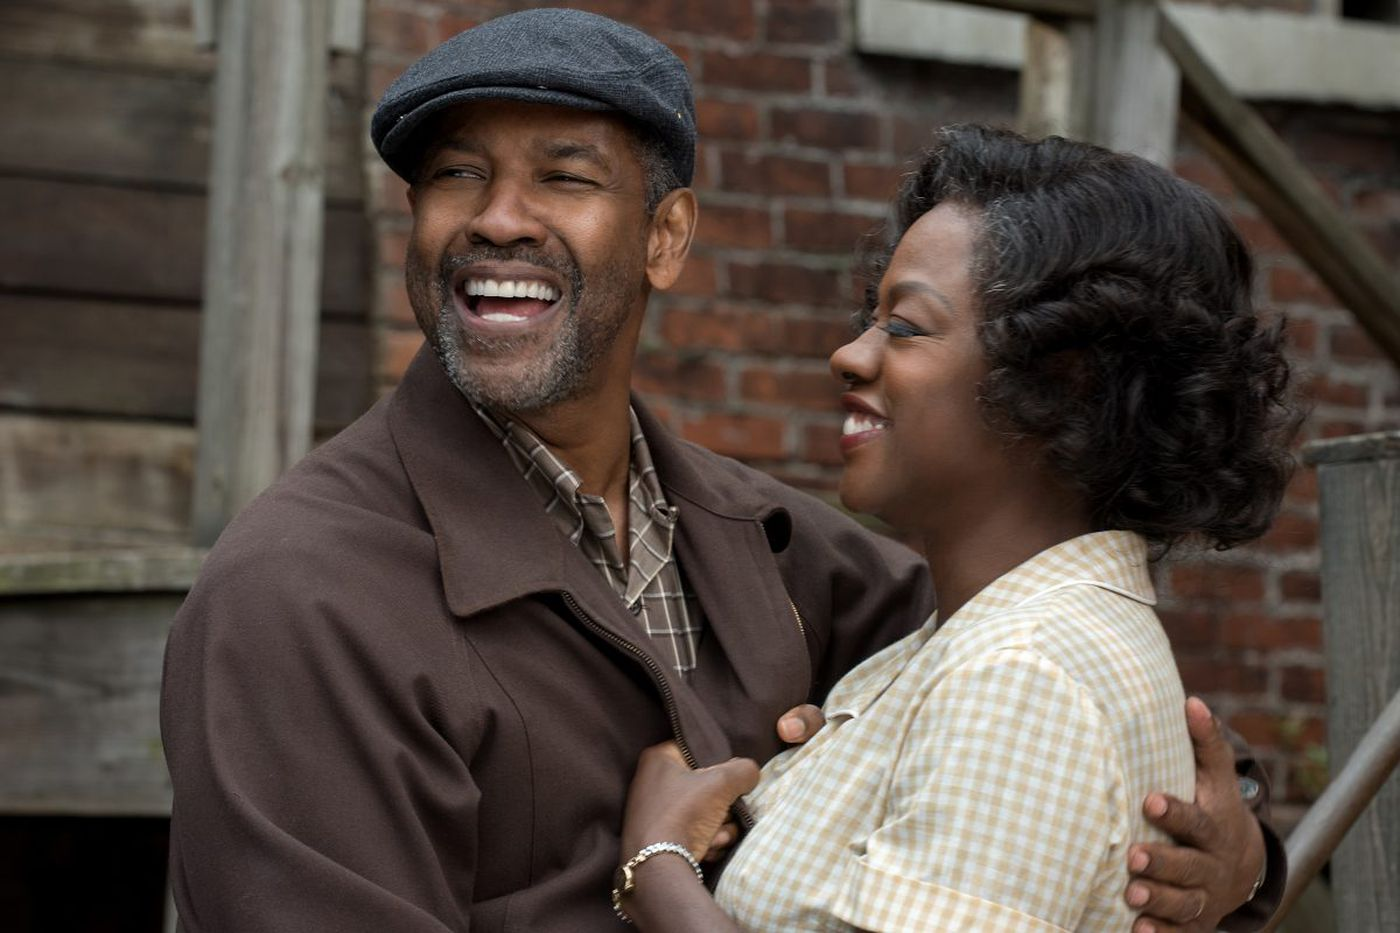 Drink beer in Cape May, see 'Fences' for free and more things to do down the Shore